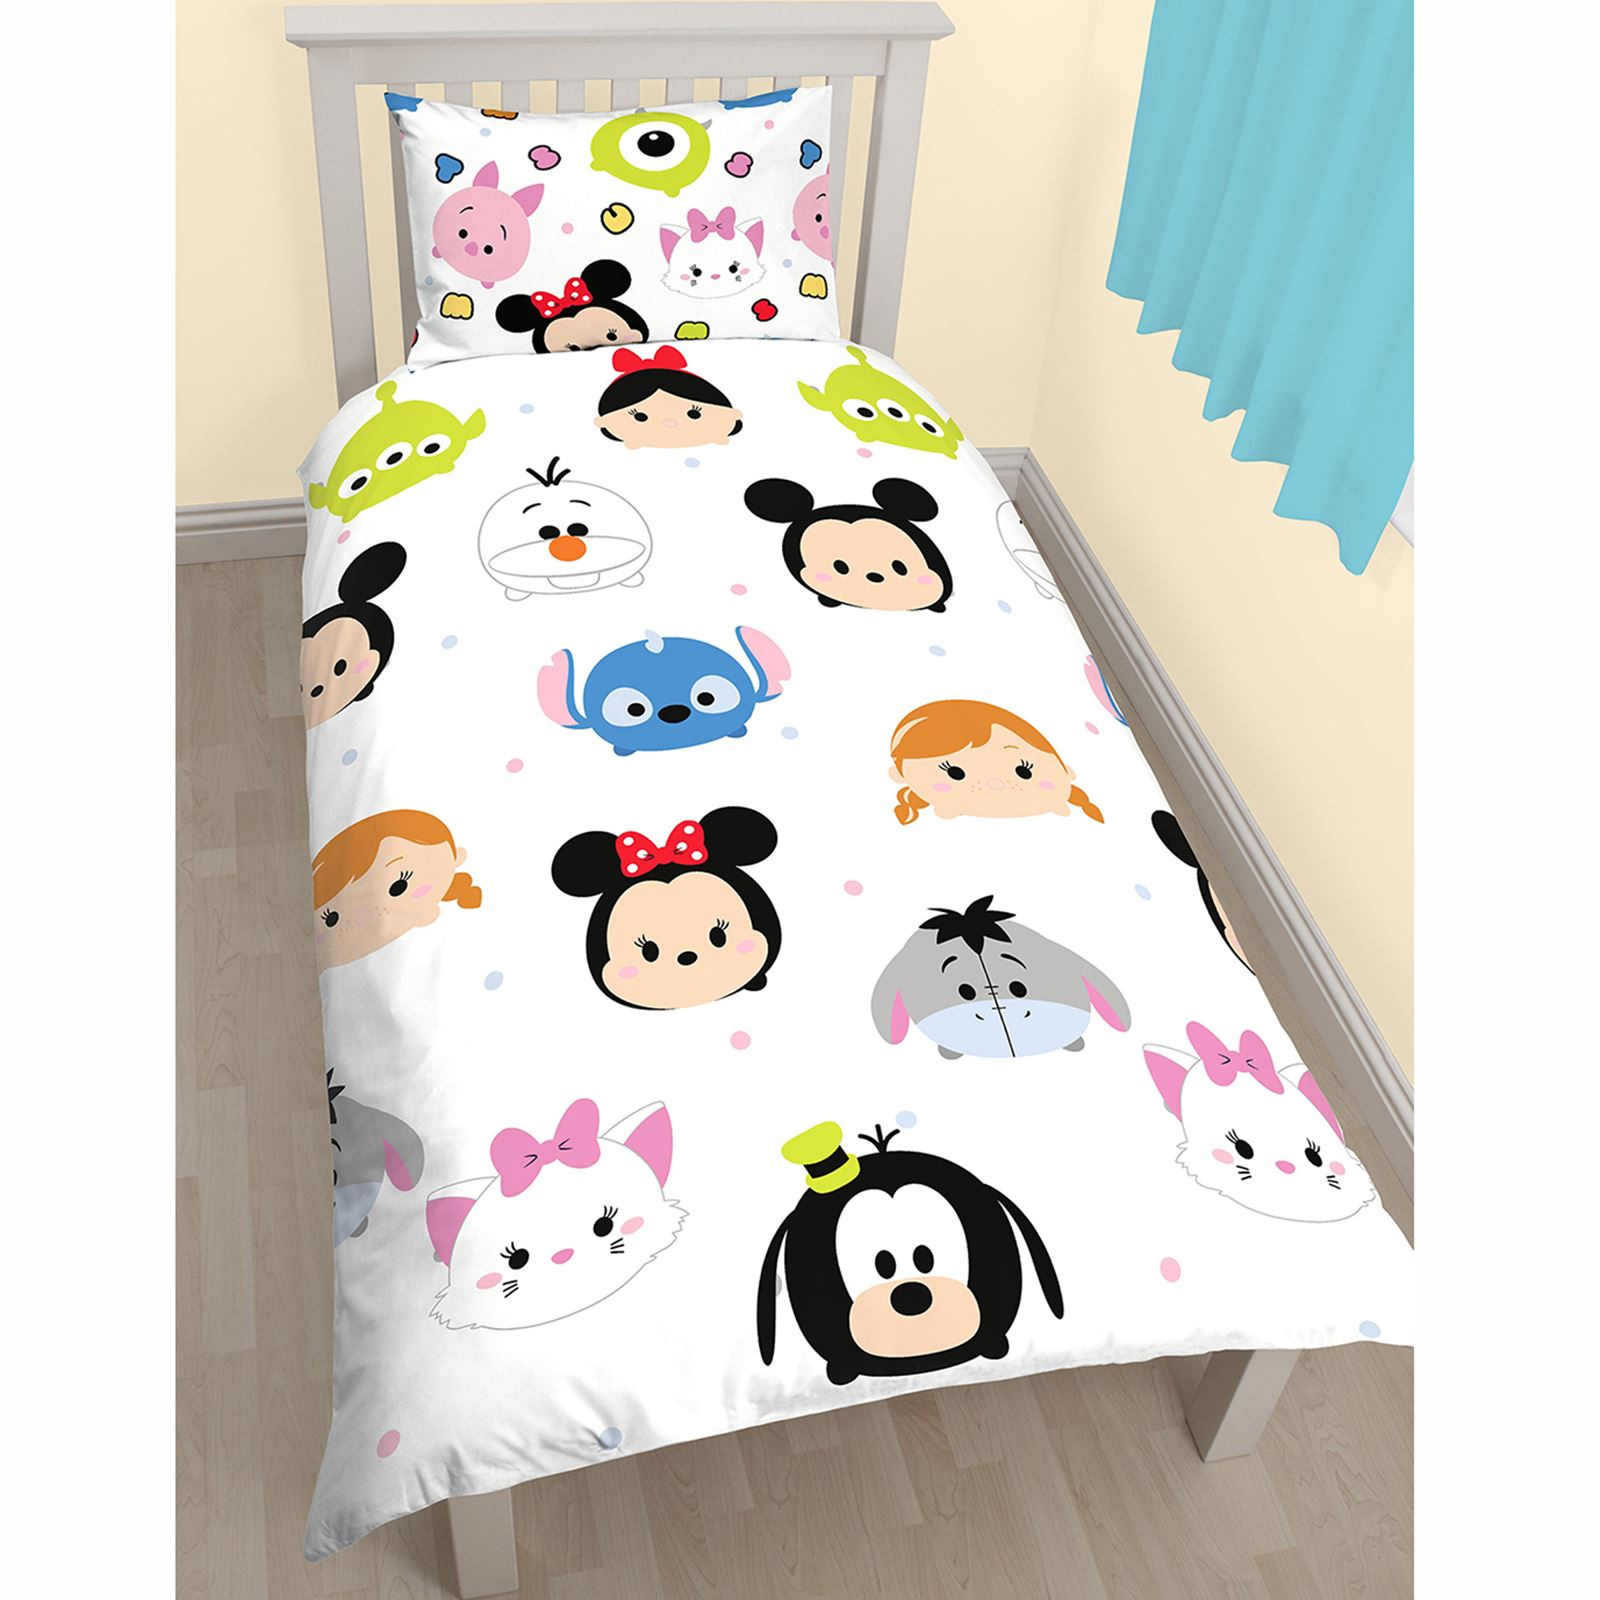 tsum tsum conjunto individual giratorio juego funda. Black Bedroom Furniture Sets. Home Design Ideas